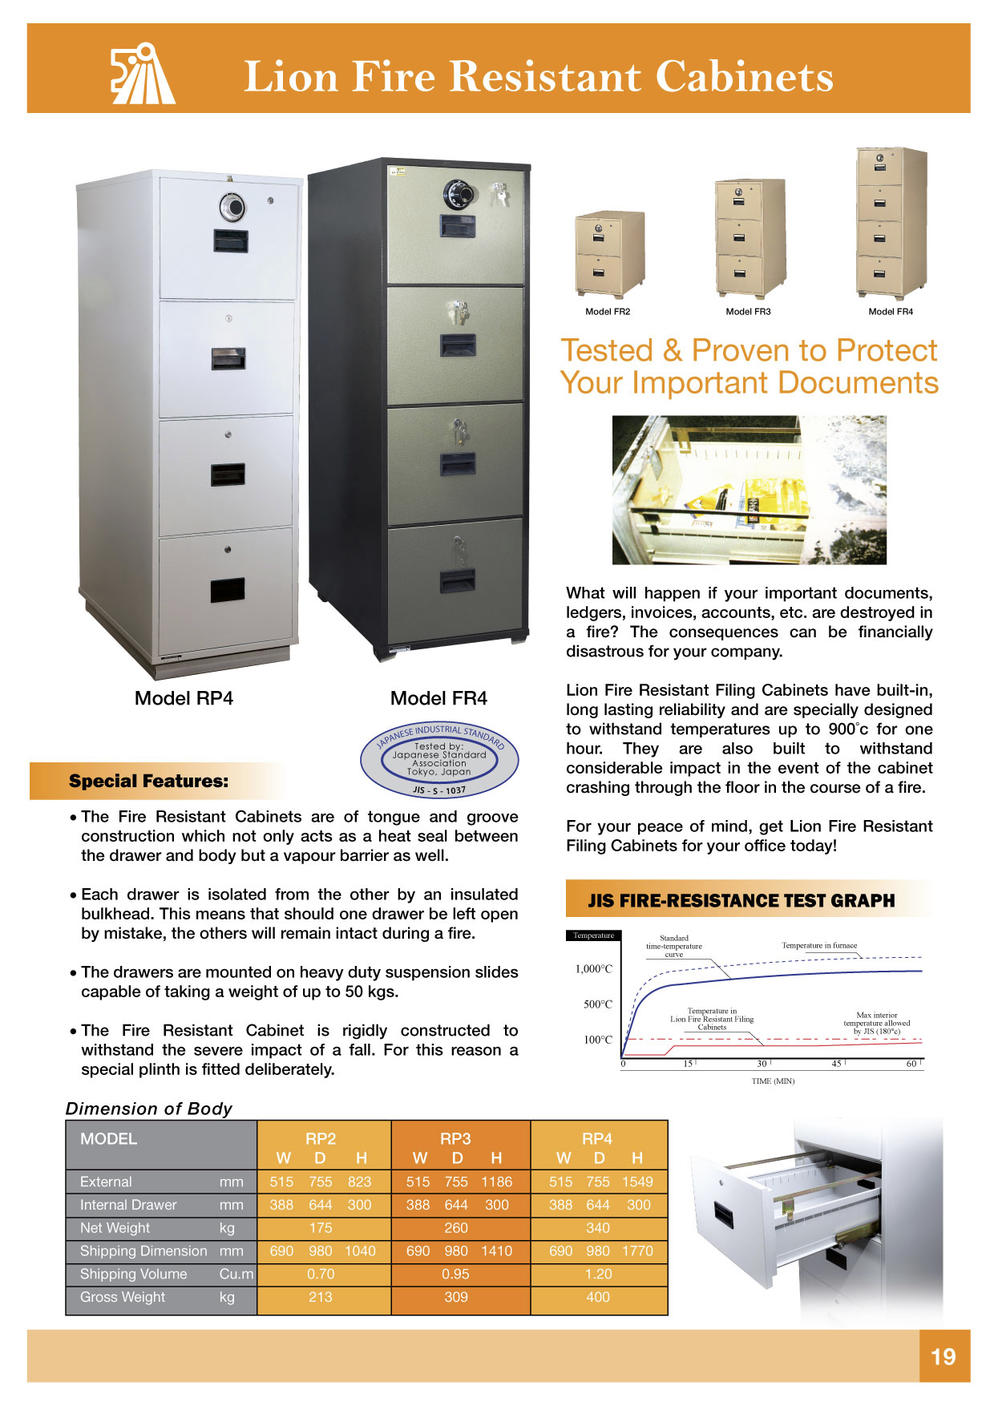 Fire Proof Filing Cabinets Lion Fire Resistant Filing Cabinets On Mltc Enterprise